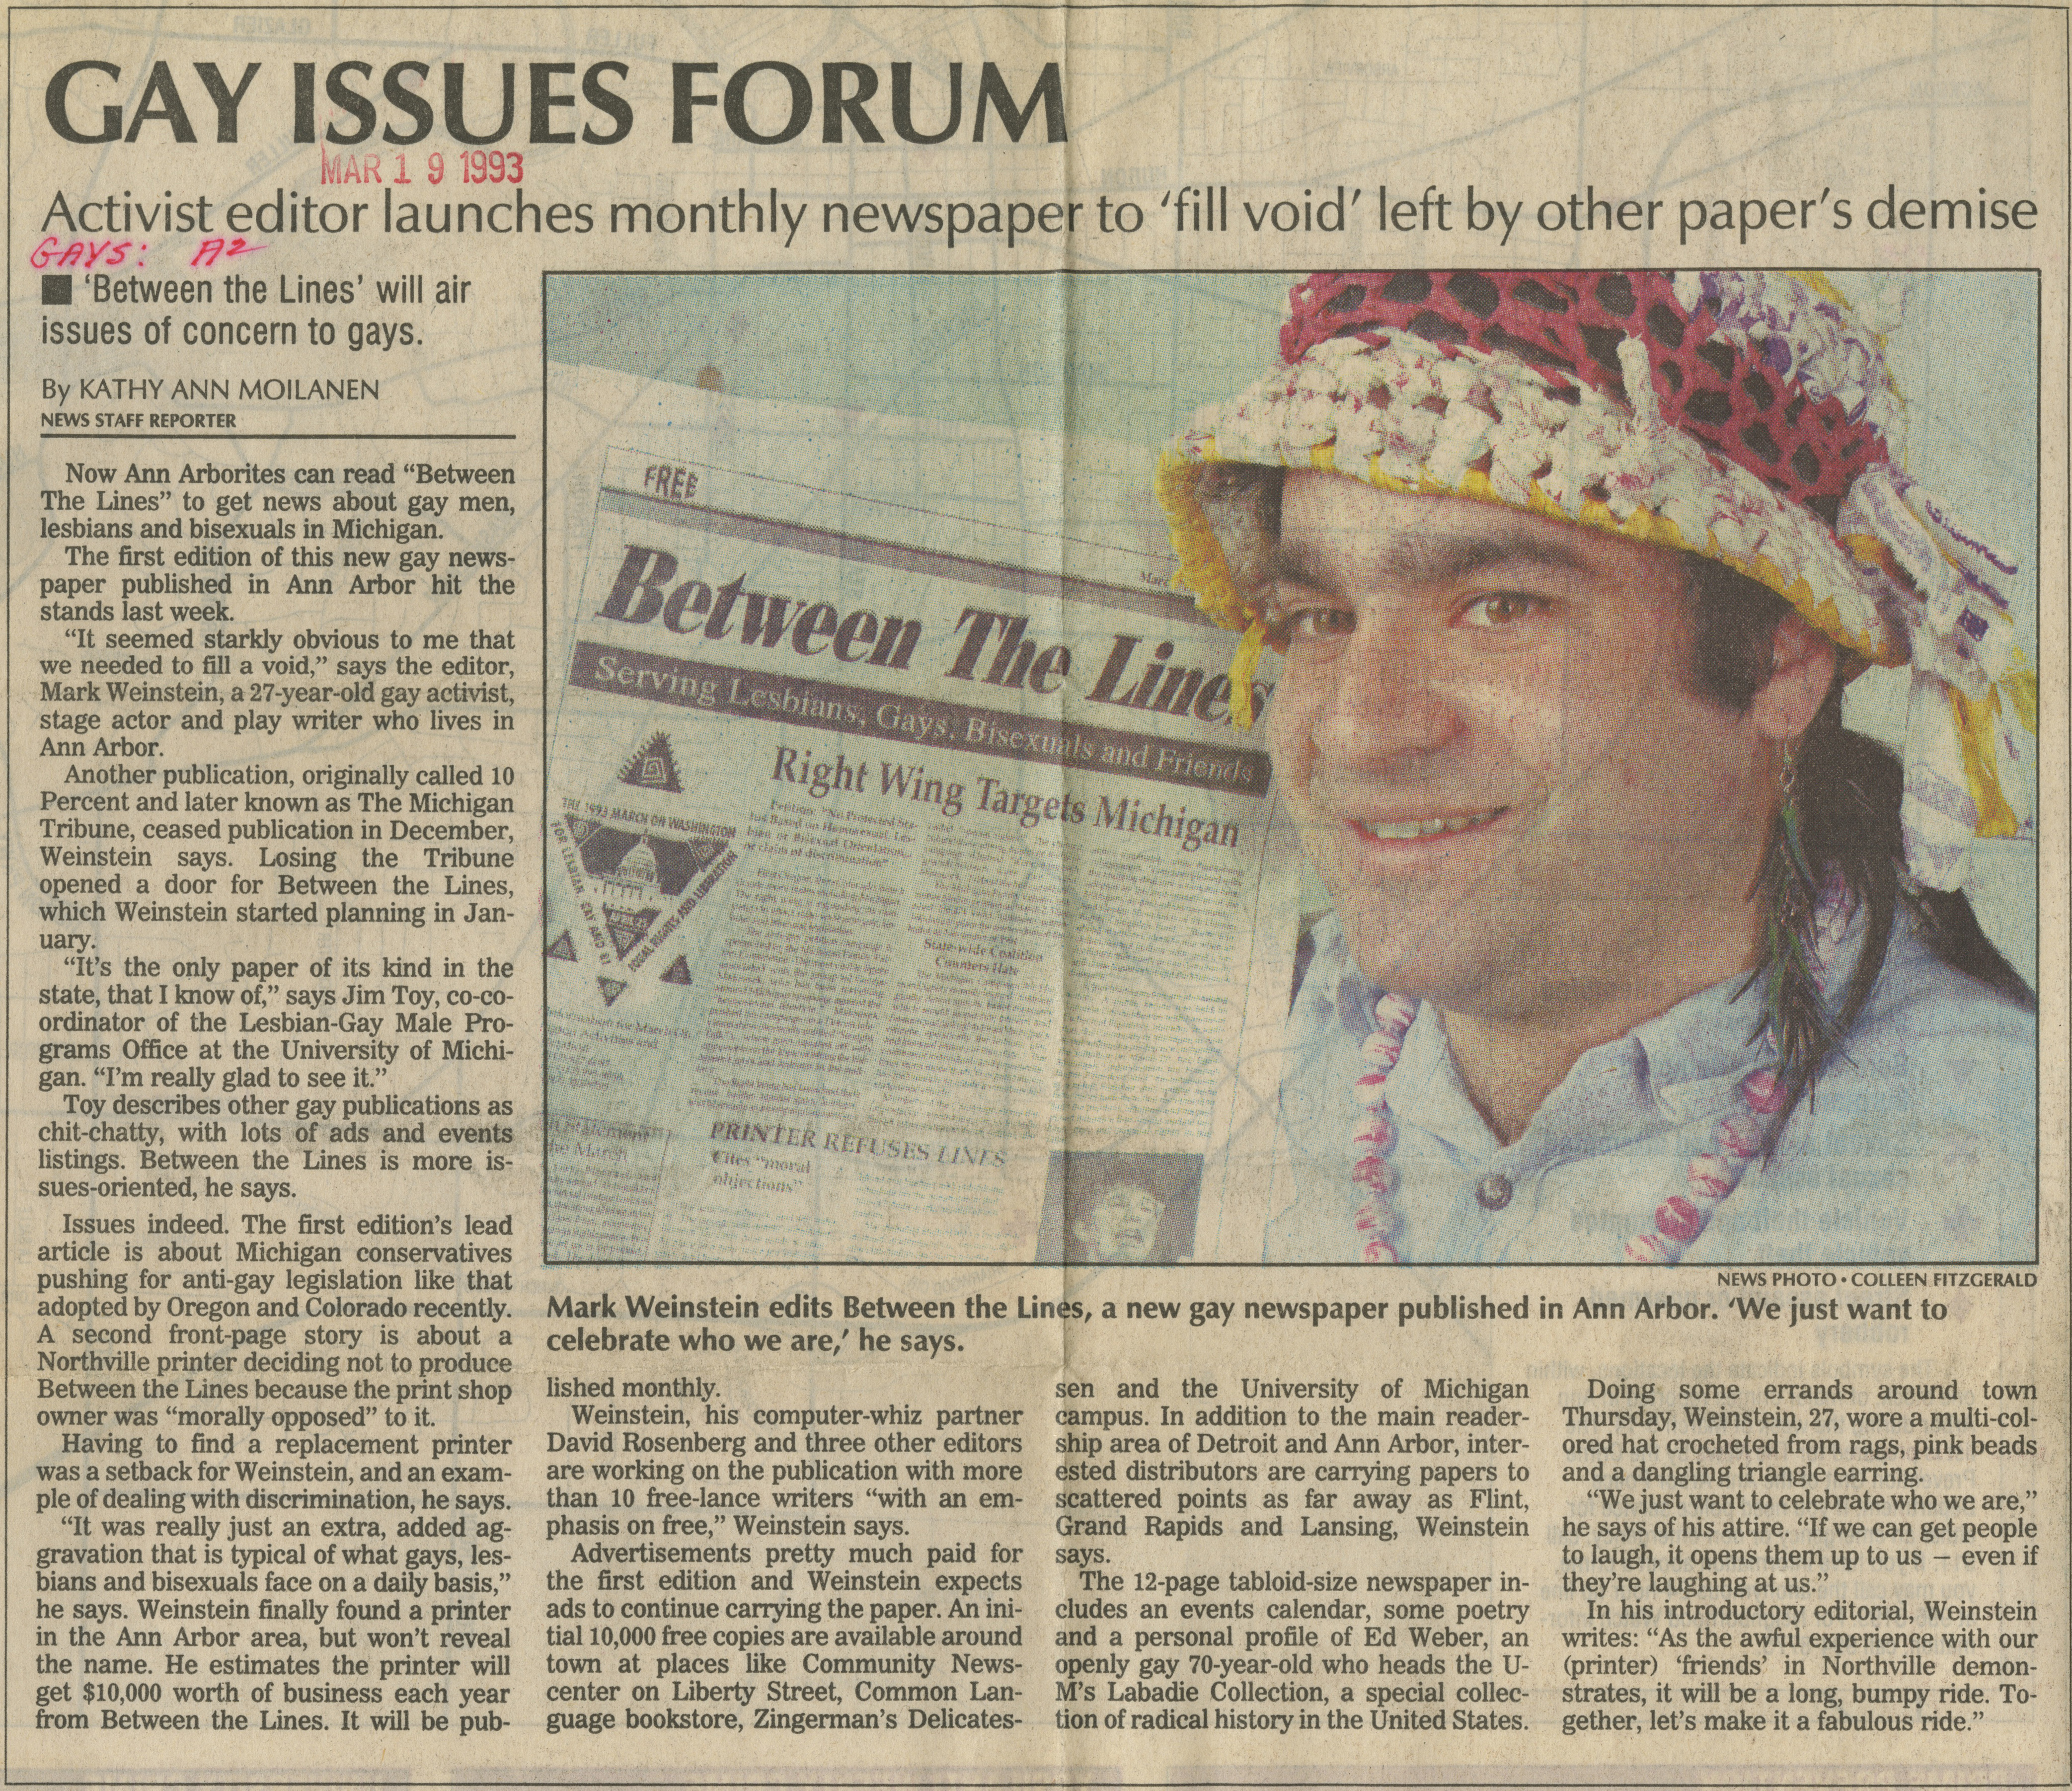 Gay Issues Forum, Activist Editor Launches Monthly Newspaper To 'Fill Void' Left By Other Papers' Demise image